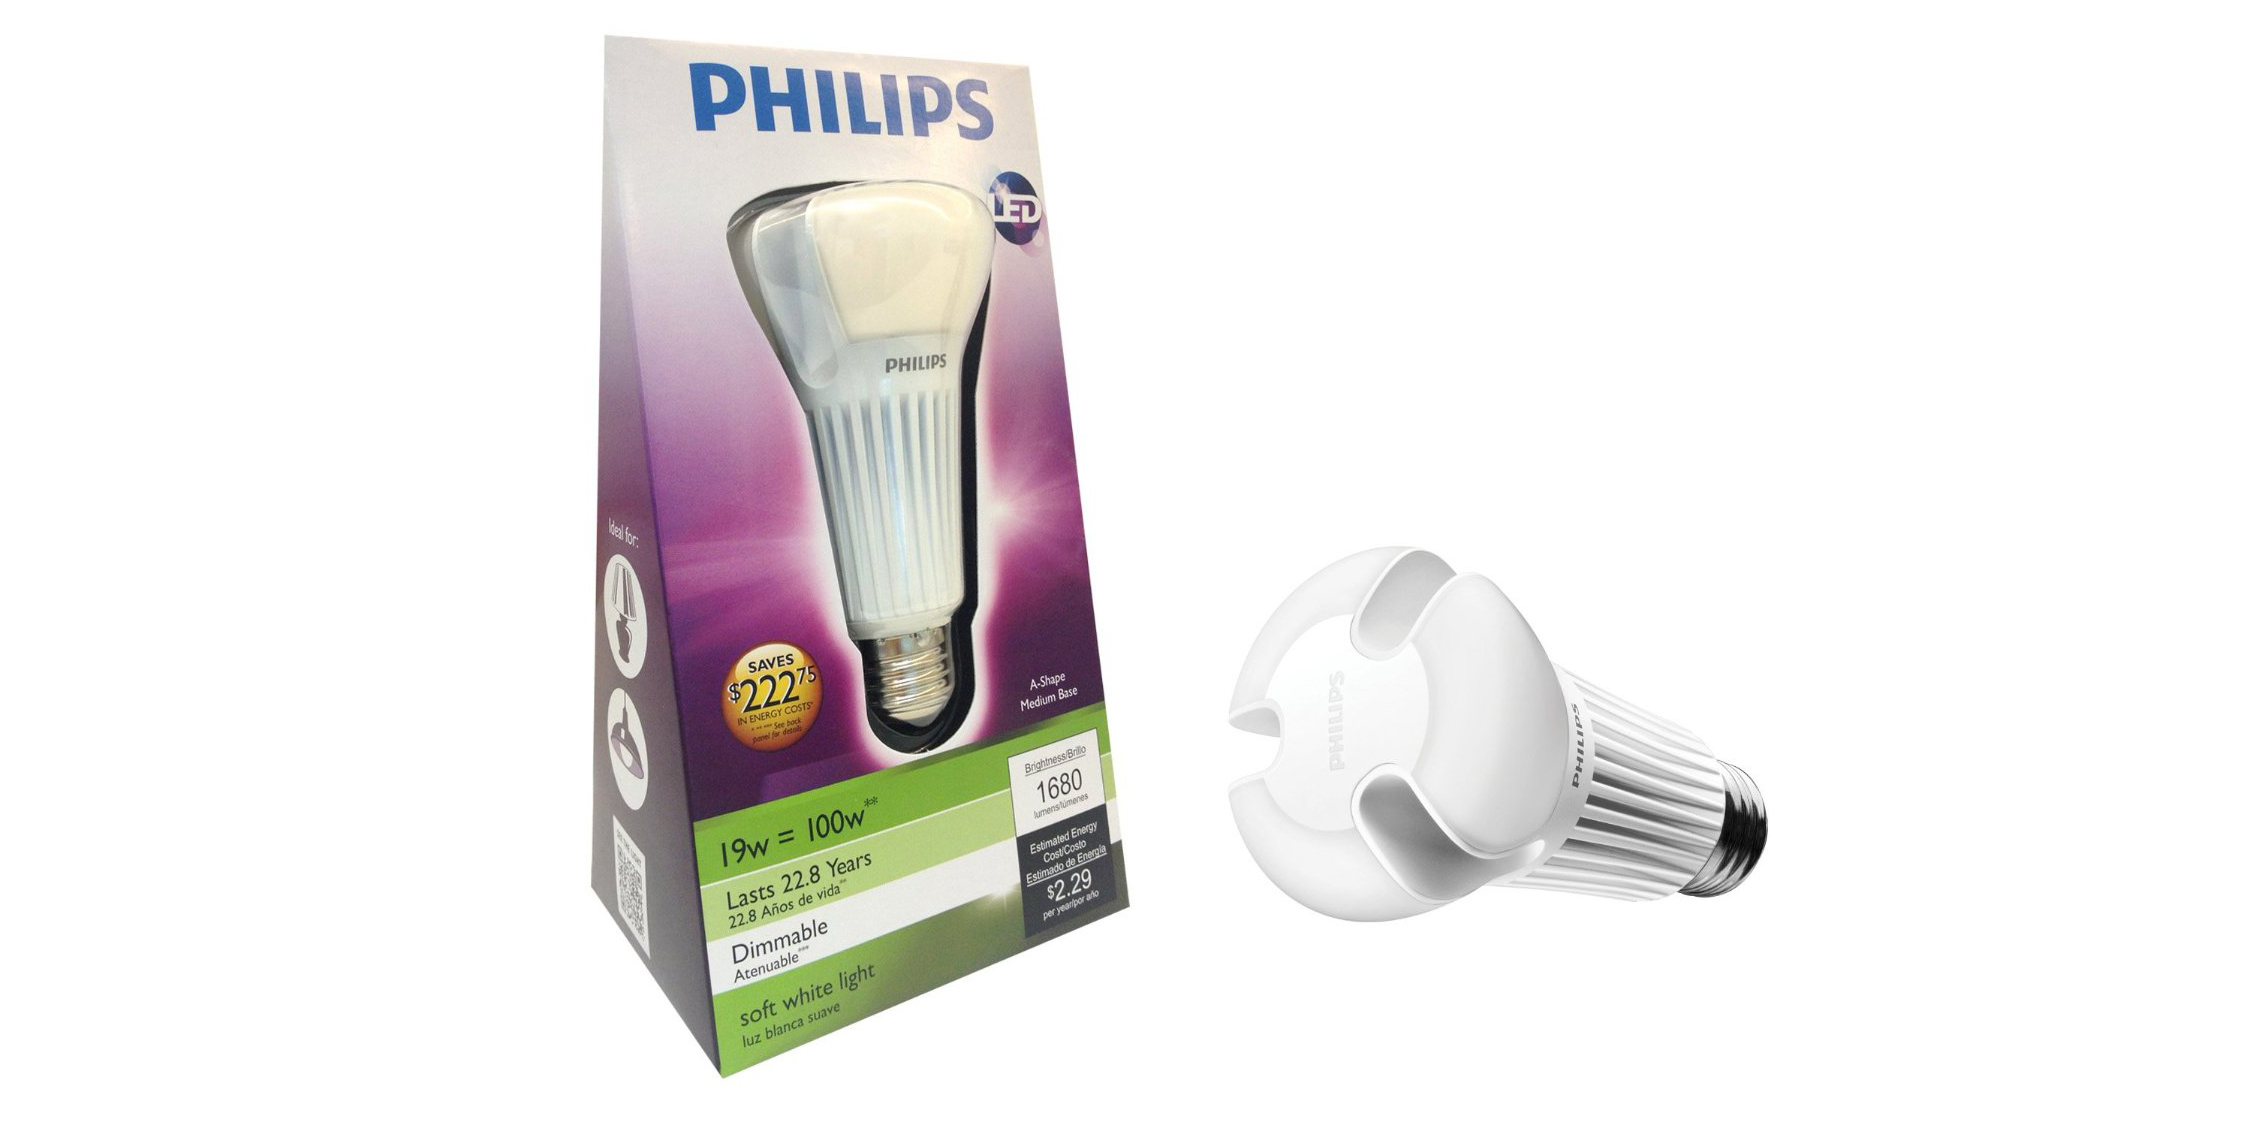 philips-led-light-amazon-deal